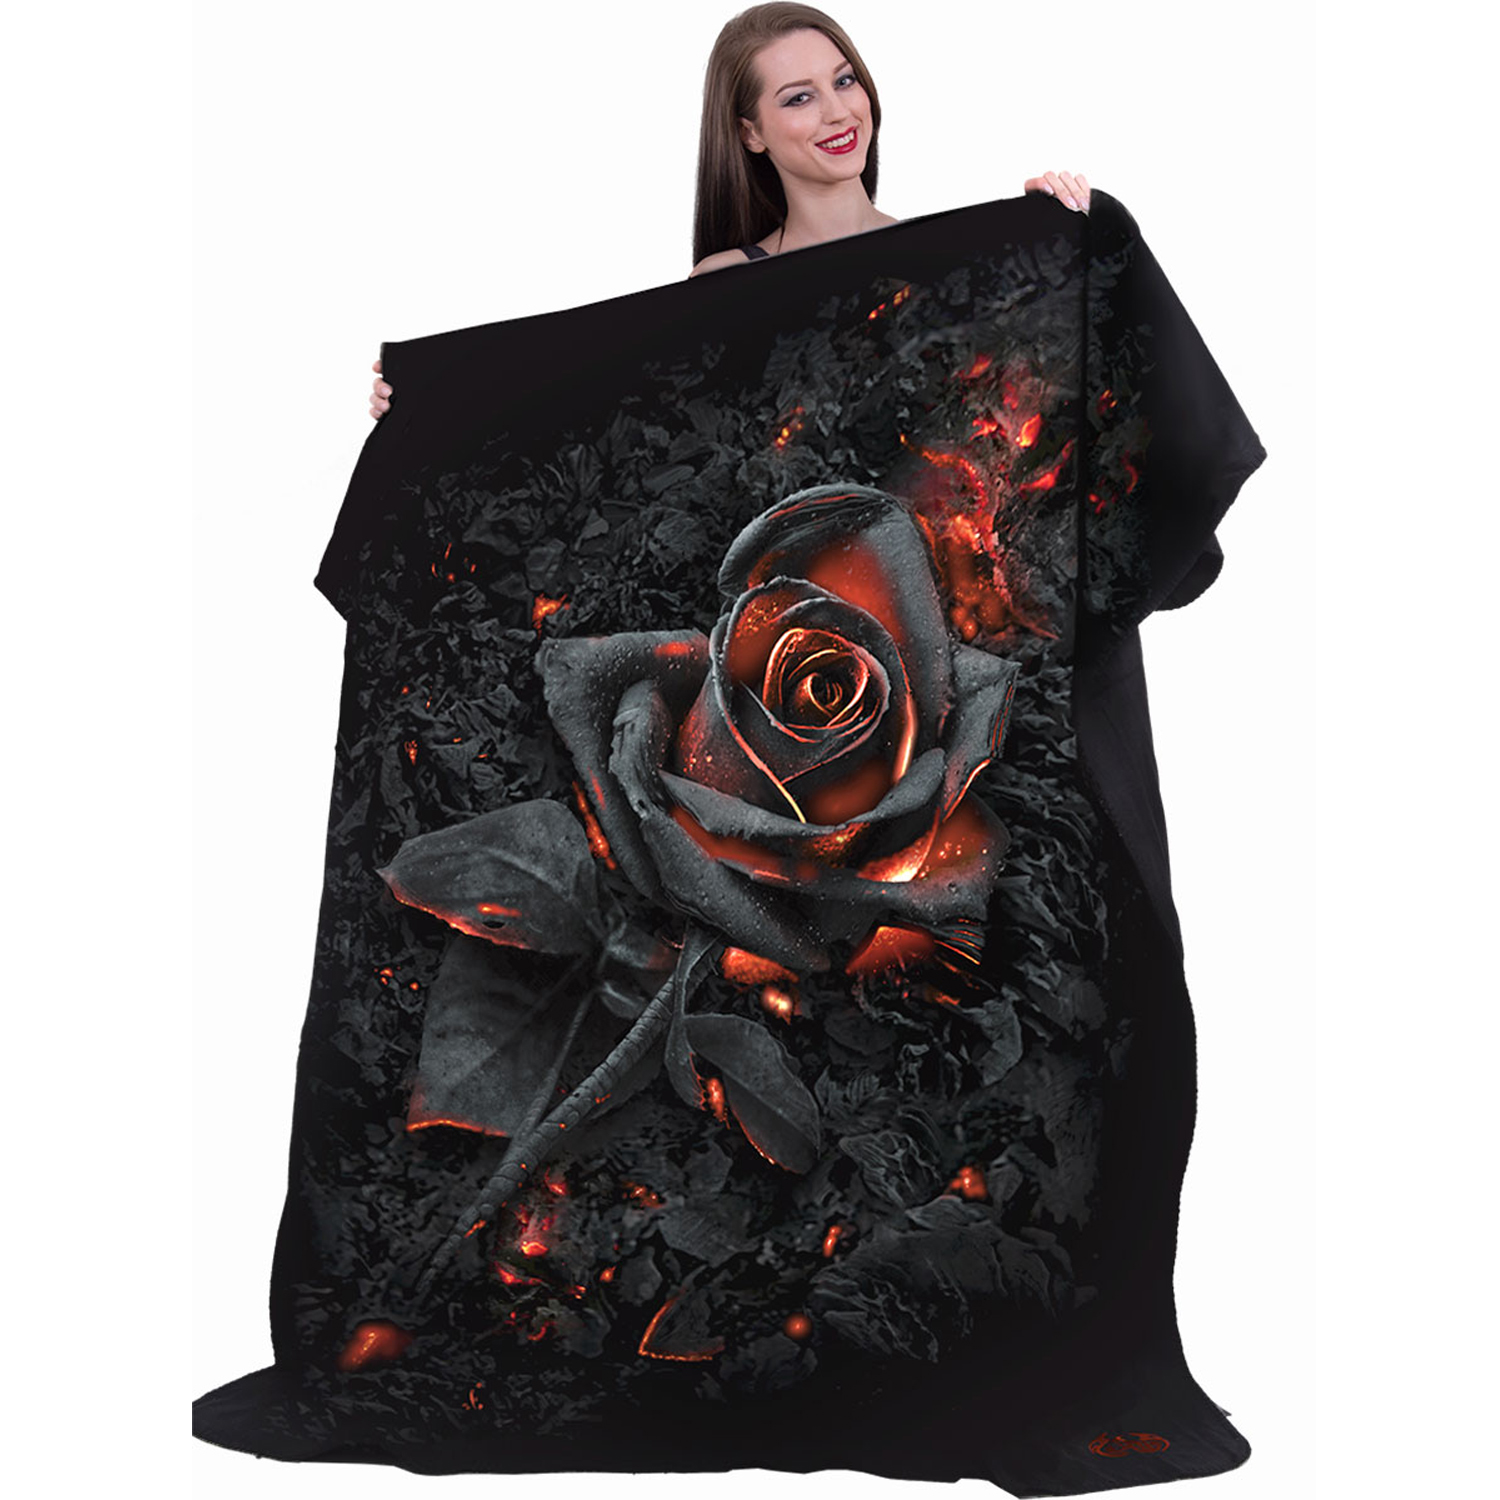 Fleece Blanket with Double Sided Print Bedding Spiral Direct TWISTED SKULLS